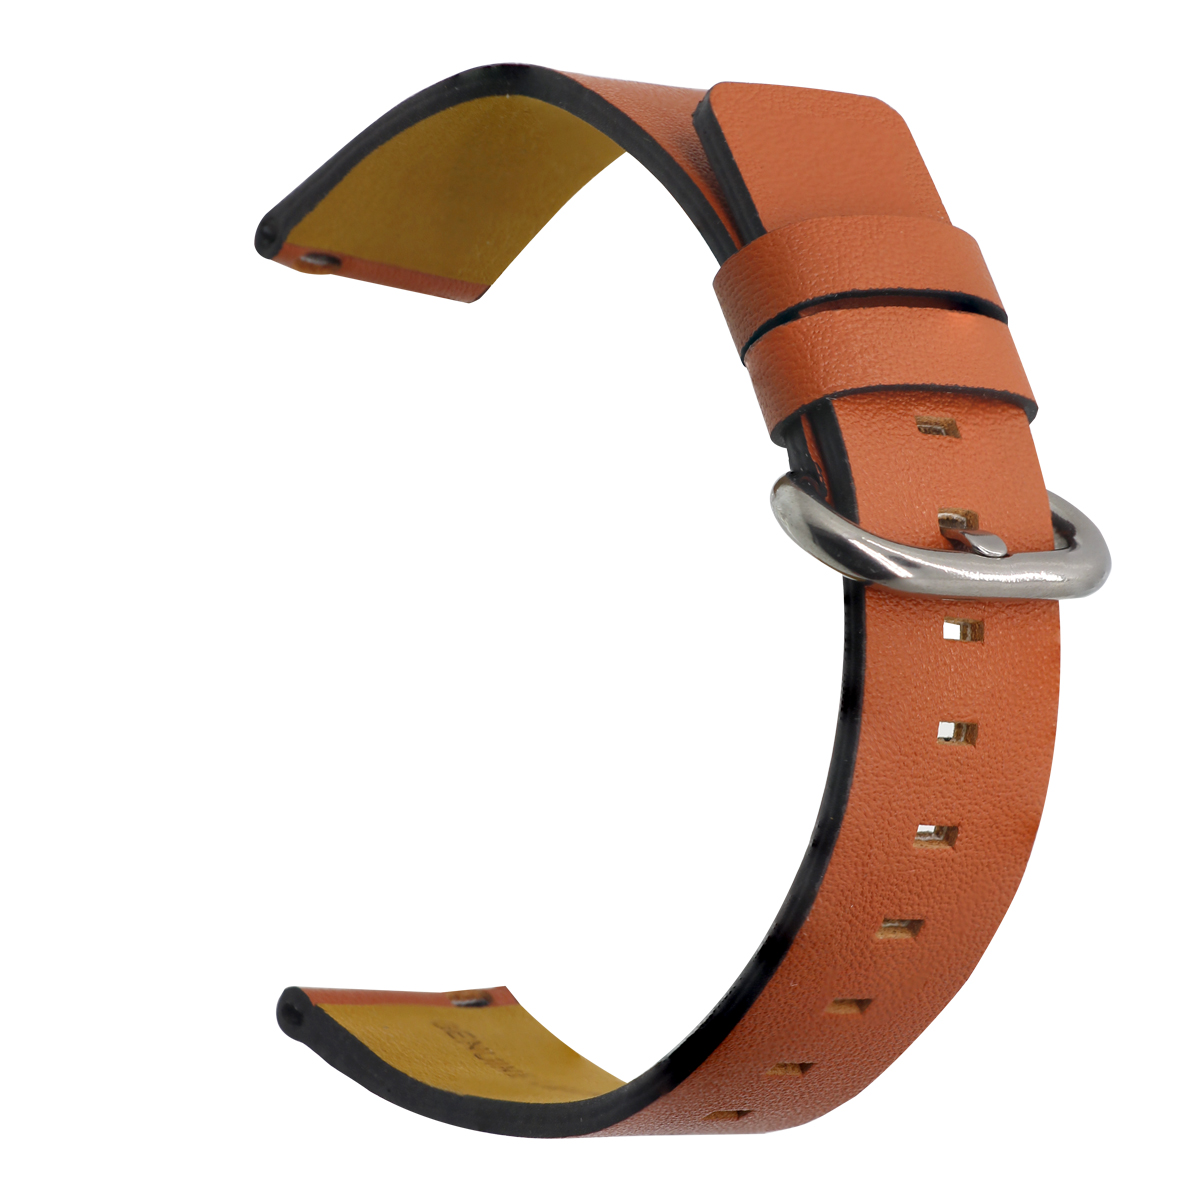 ZLIMSN Design Classic Buckle Cow Leather Watch Band Bracelet Accessories Wrist Quick Release Switch Spring For Men Women 20 22mm in Watchbands from Watches